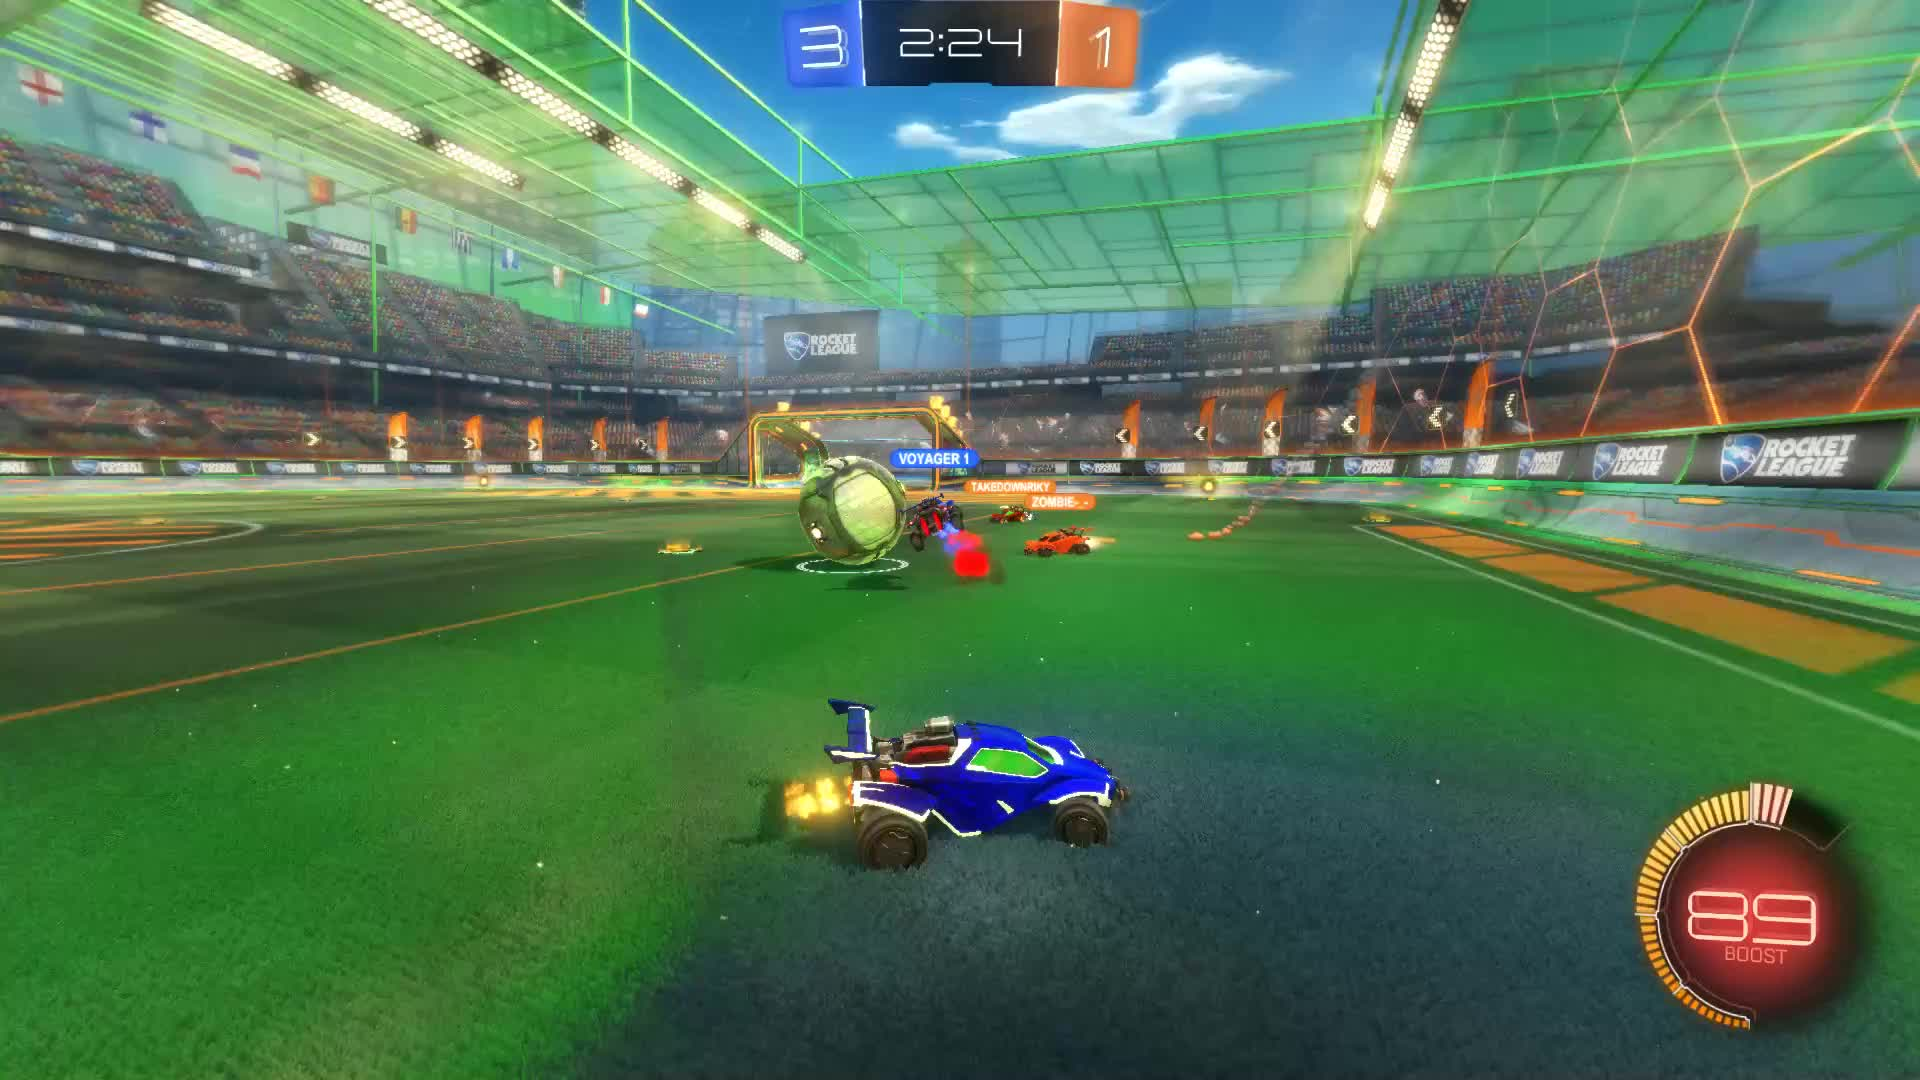 Divad, Gif Your Game, GifYourGame, Rocket League, RocketLeague, Save, Save 2: Divad GIFs